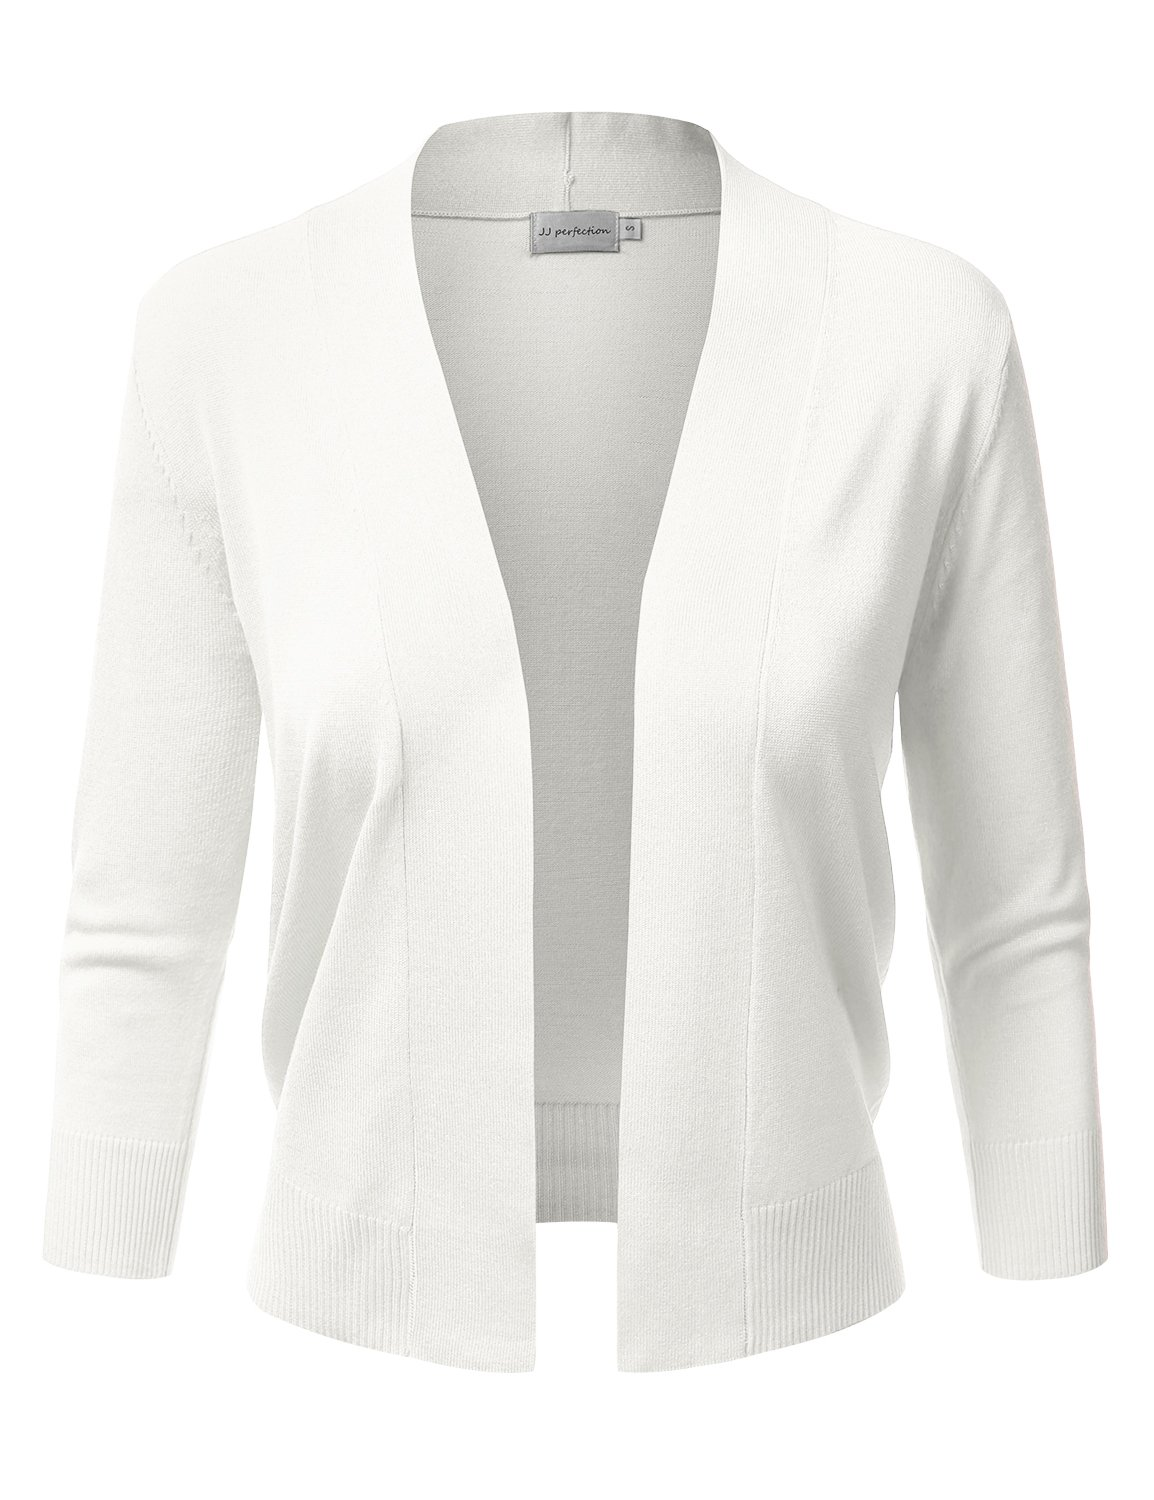 JJ Perfection Women's Basic 3/4 Sleeve Open Front Cropped Cardigan White M